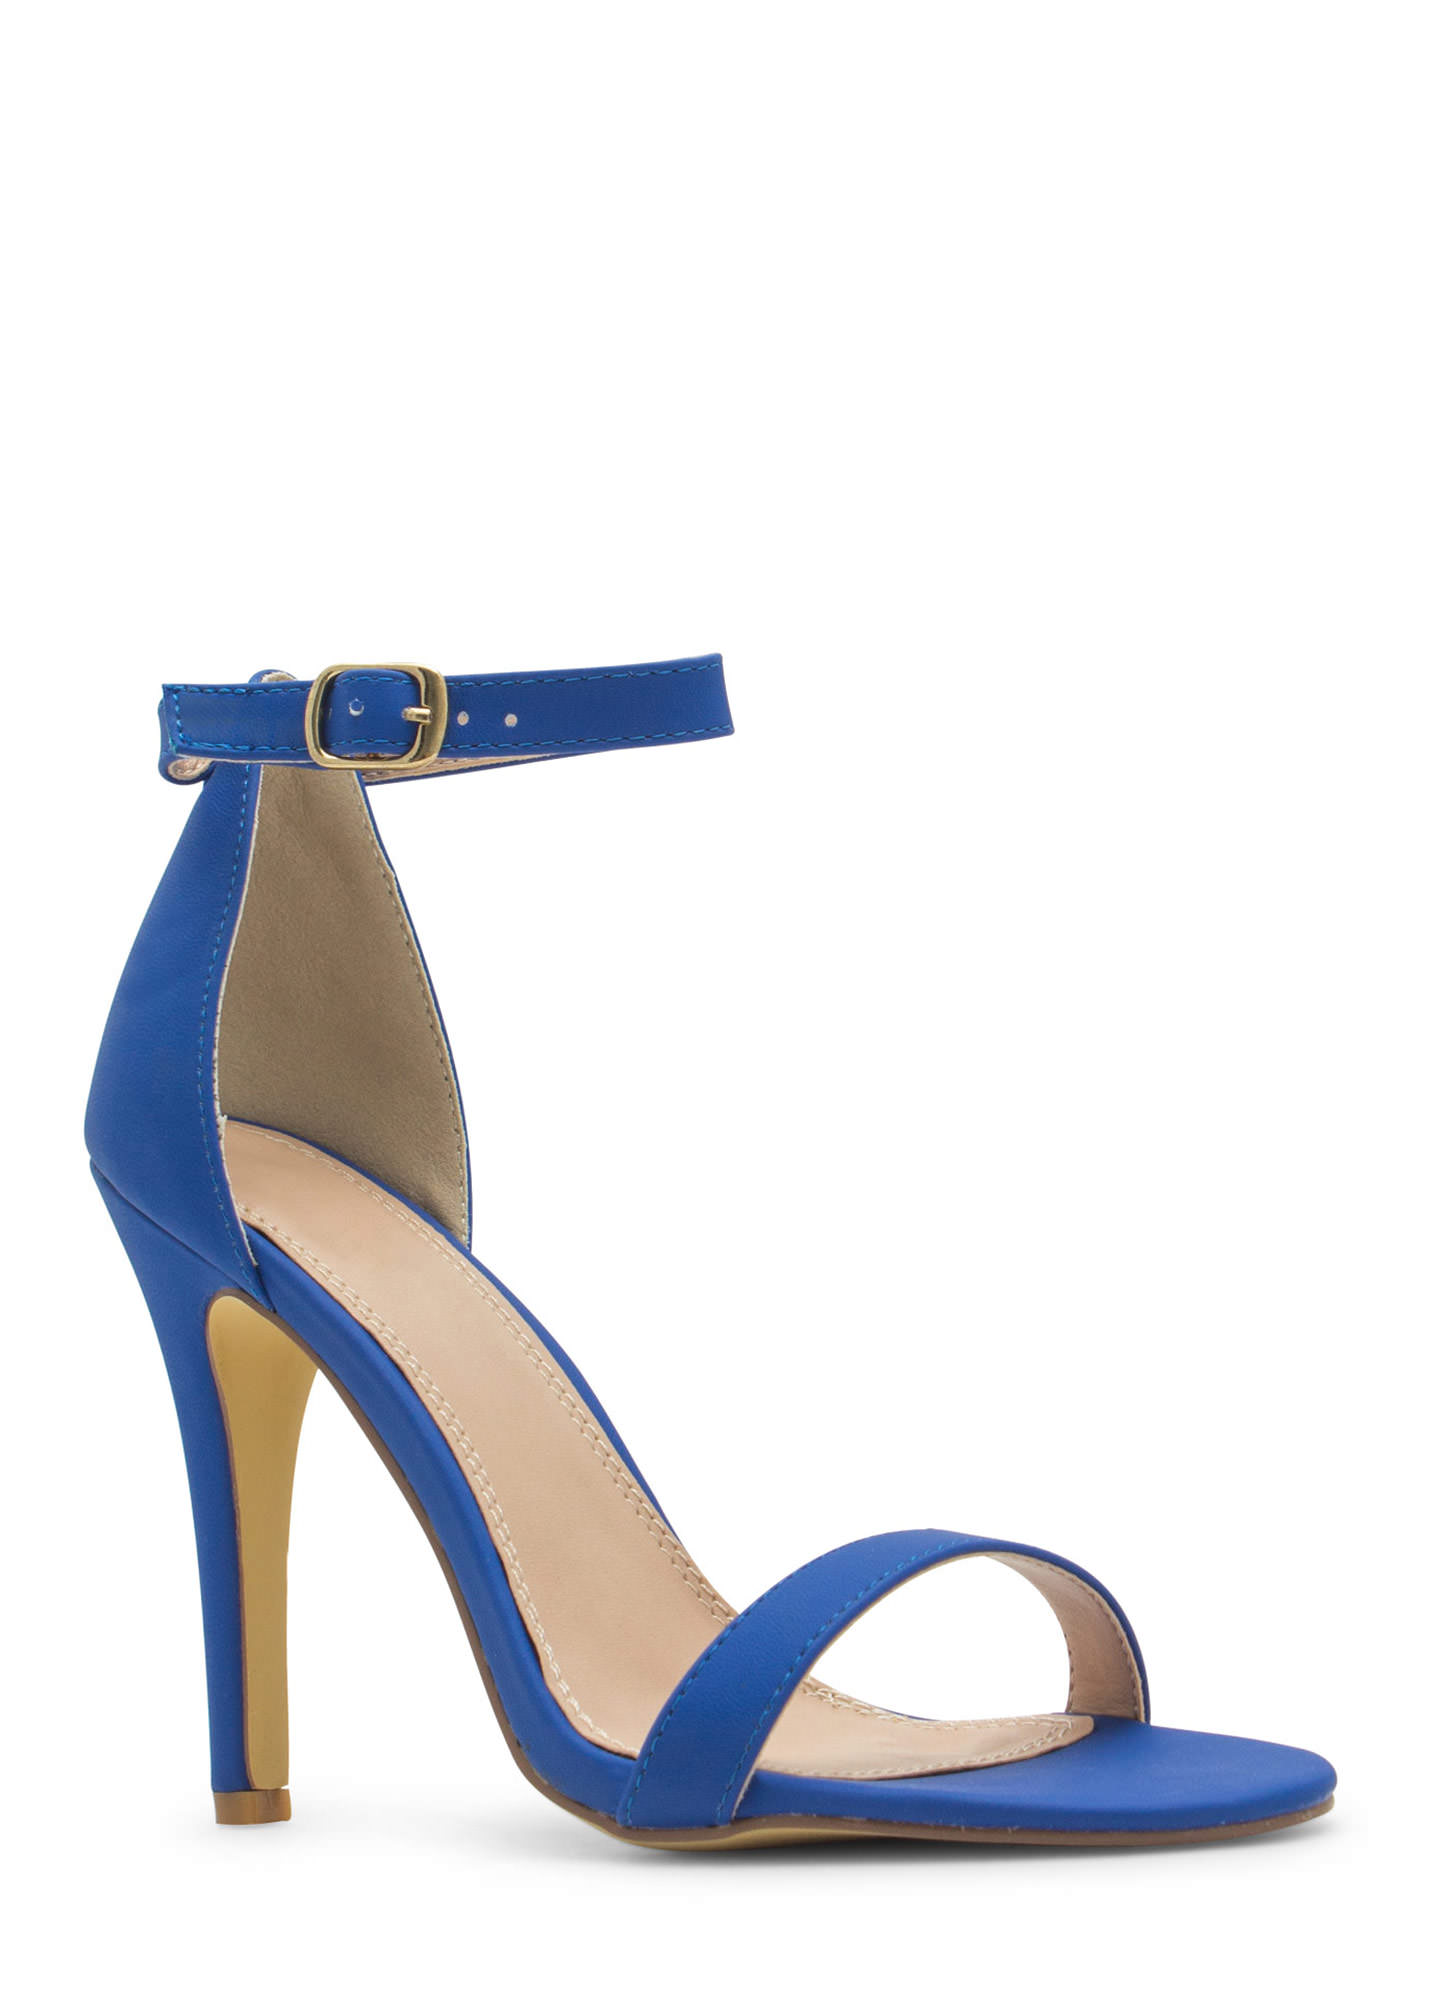 Less Is More Single-Strap Heels BLUE